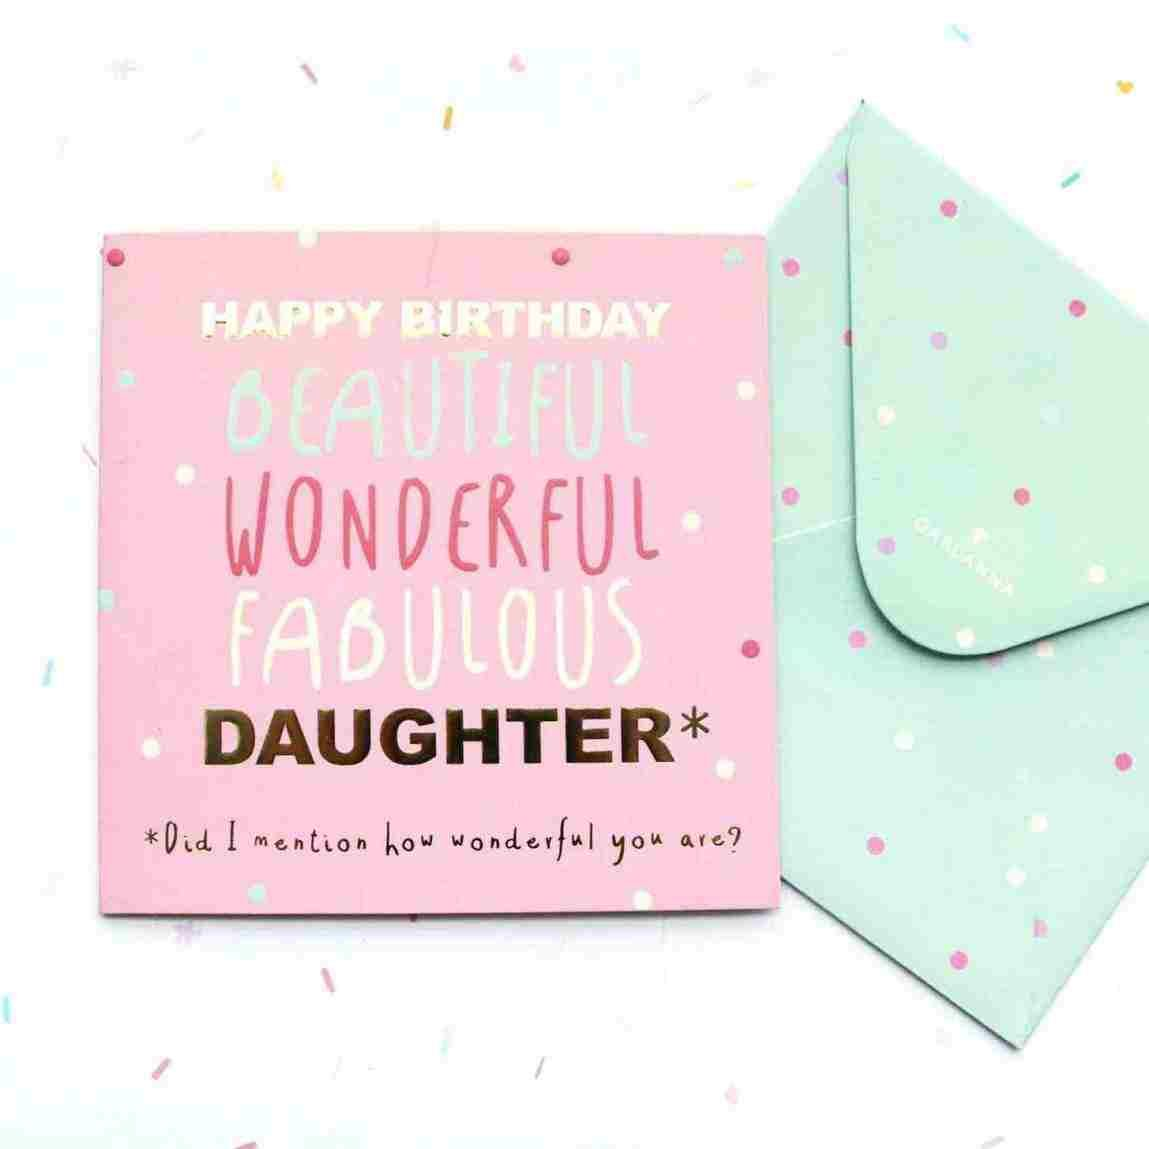 Amazing birthday wishes to daughter model cool spiritual birthday amazing birthday wishes to daughter model cool spiritual birthday quotes ideas modern spiritual birthday kristyandbryce Choice Image